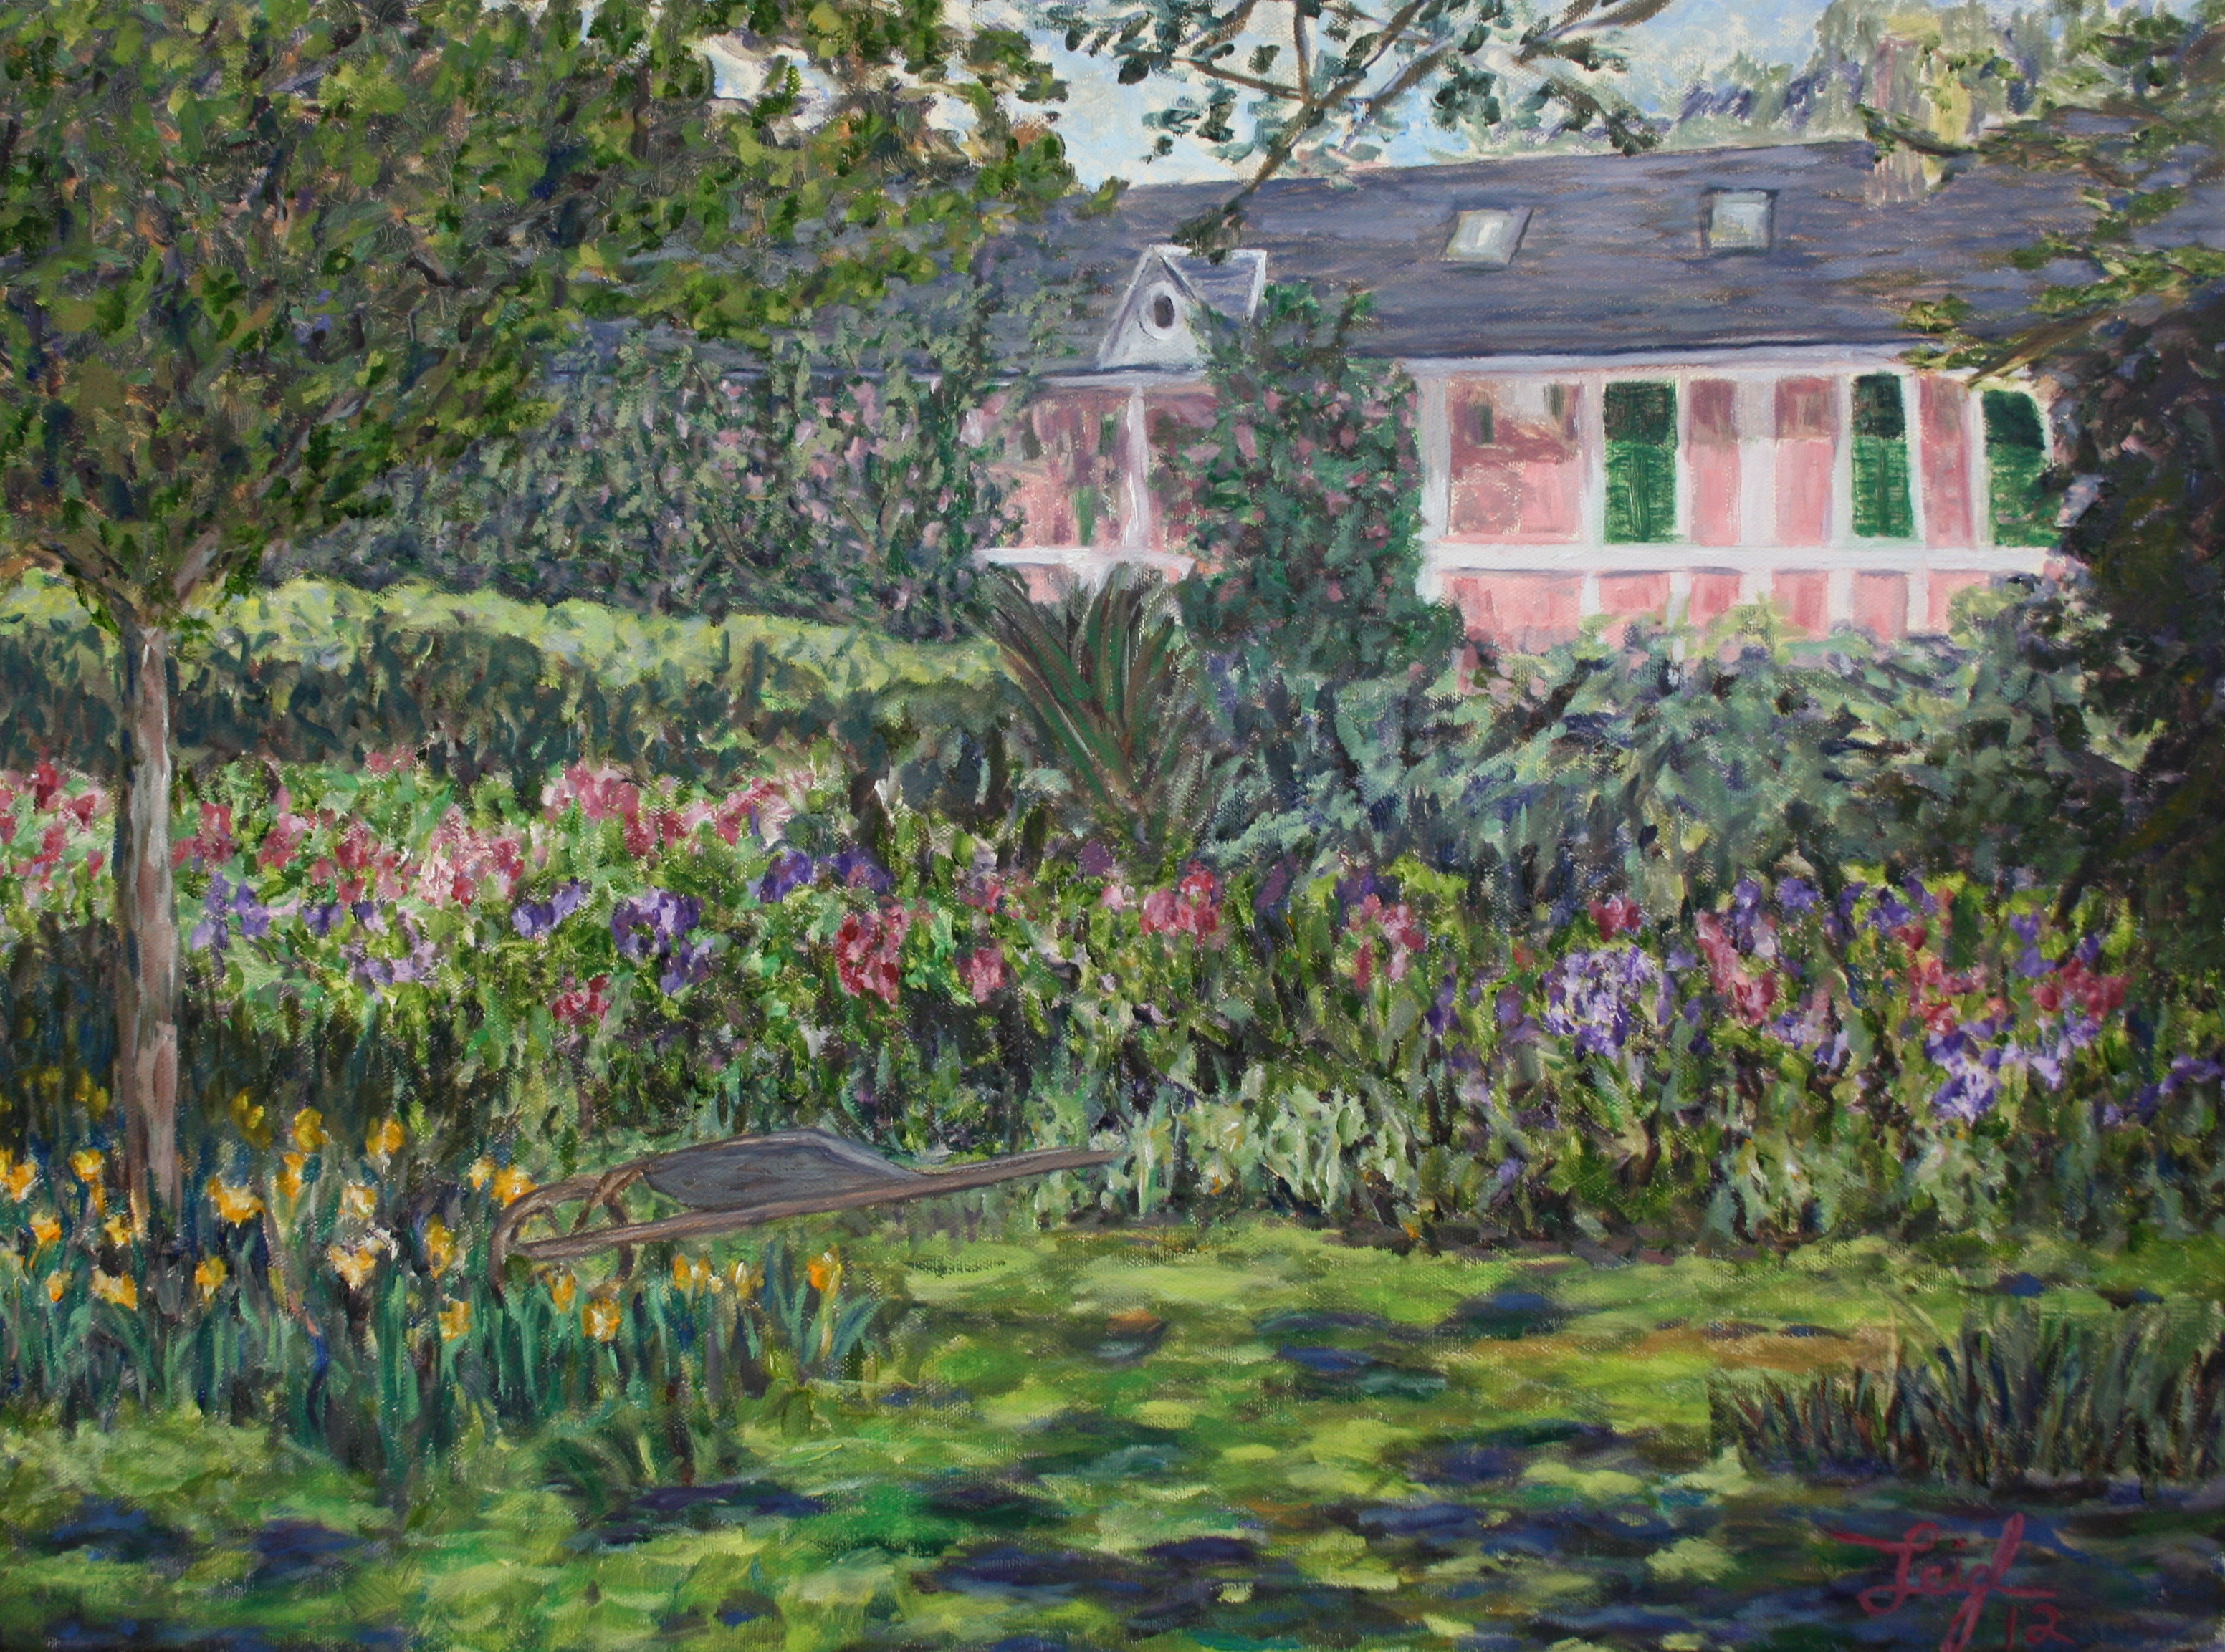 Monet's House in Giverny  ~   Lynn Grefe, New York, NY  2012 • 24 x 18